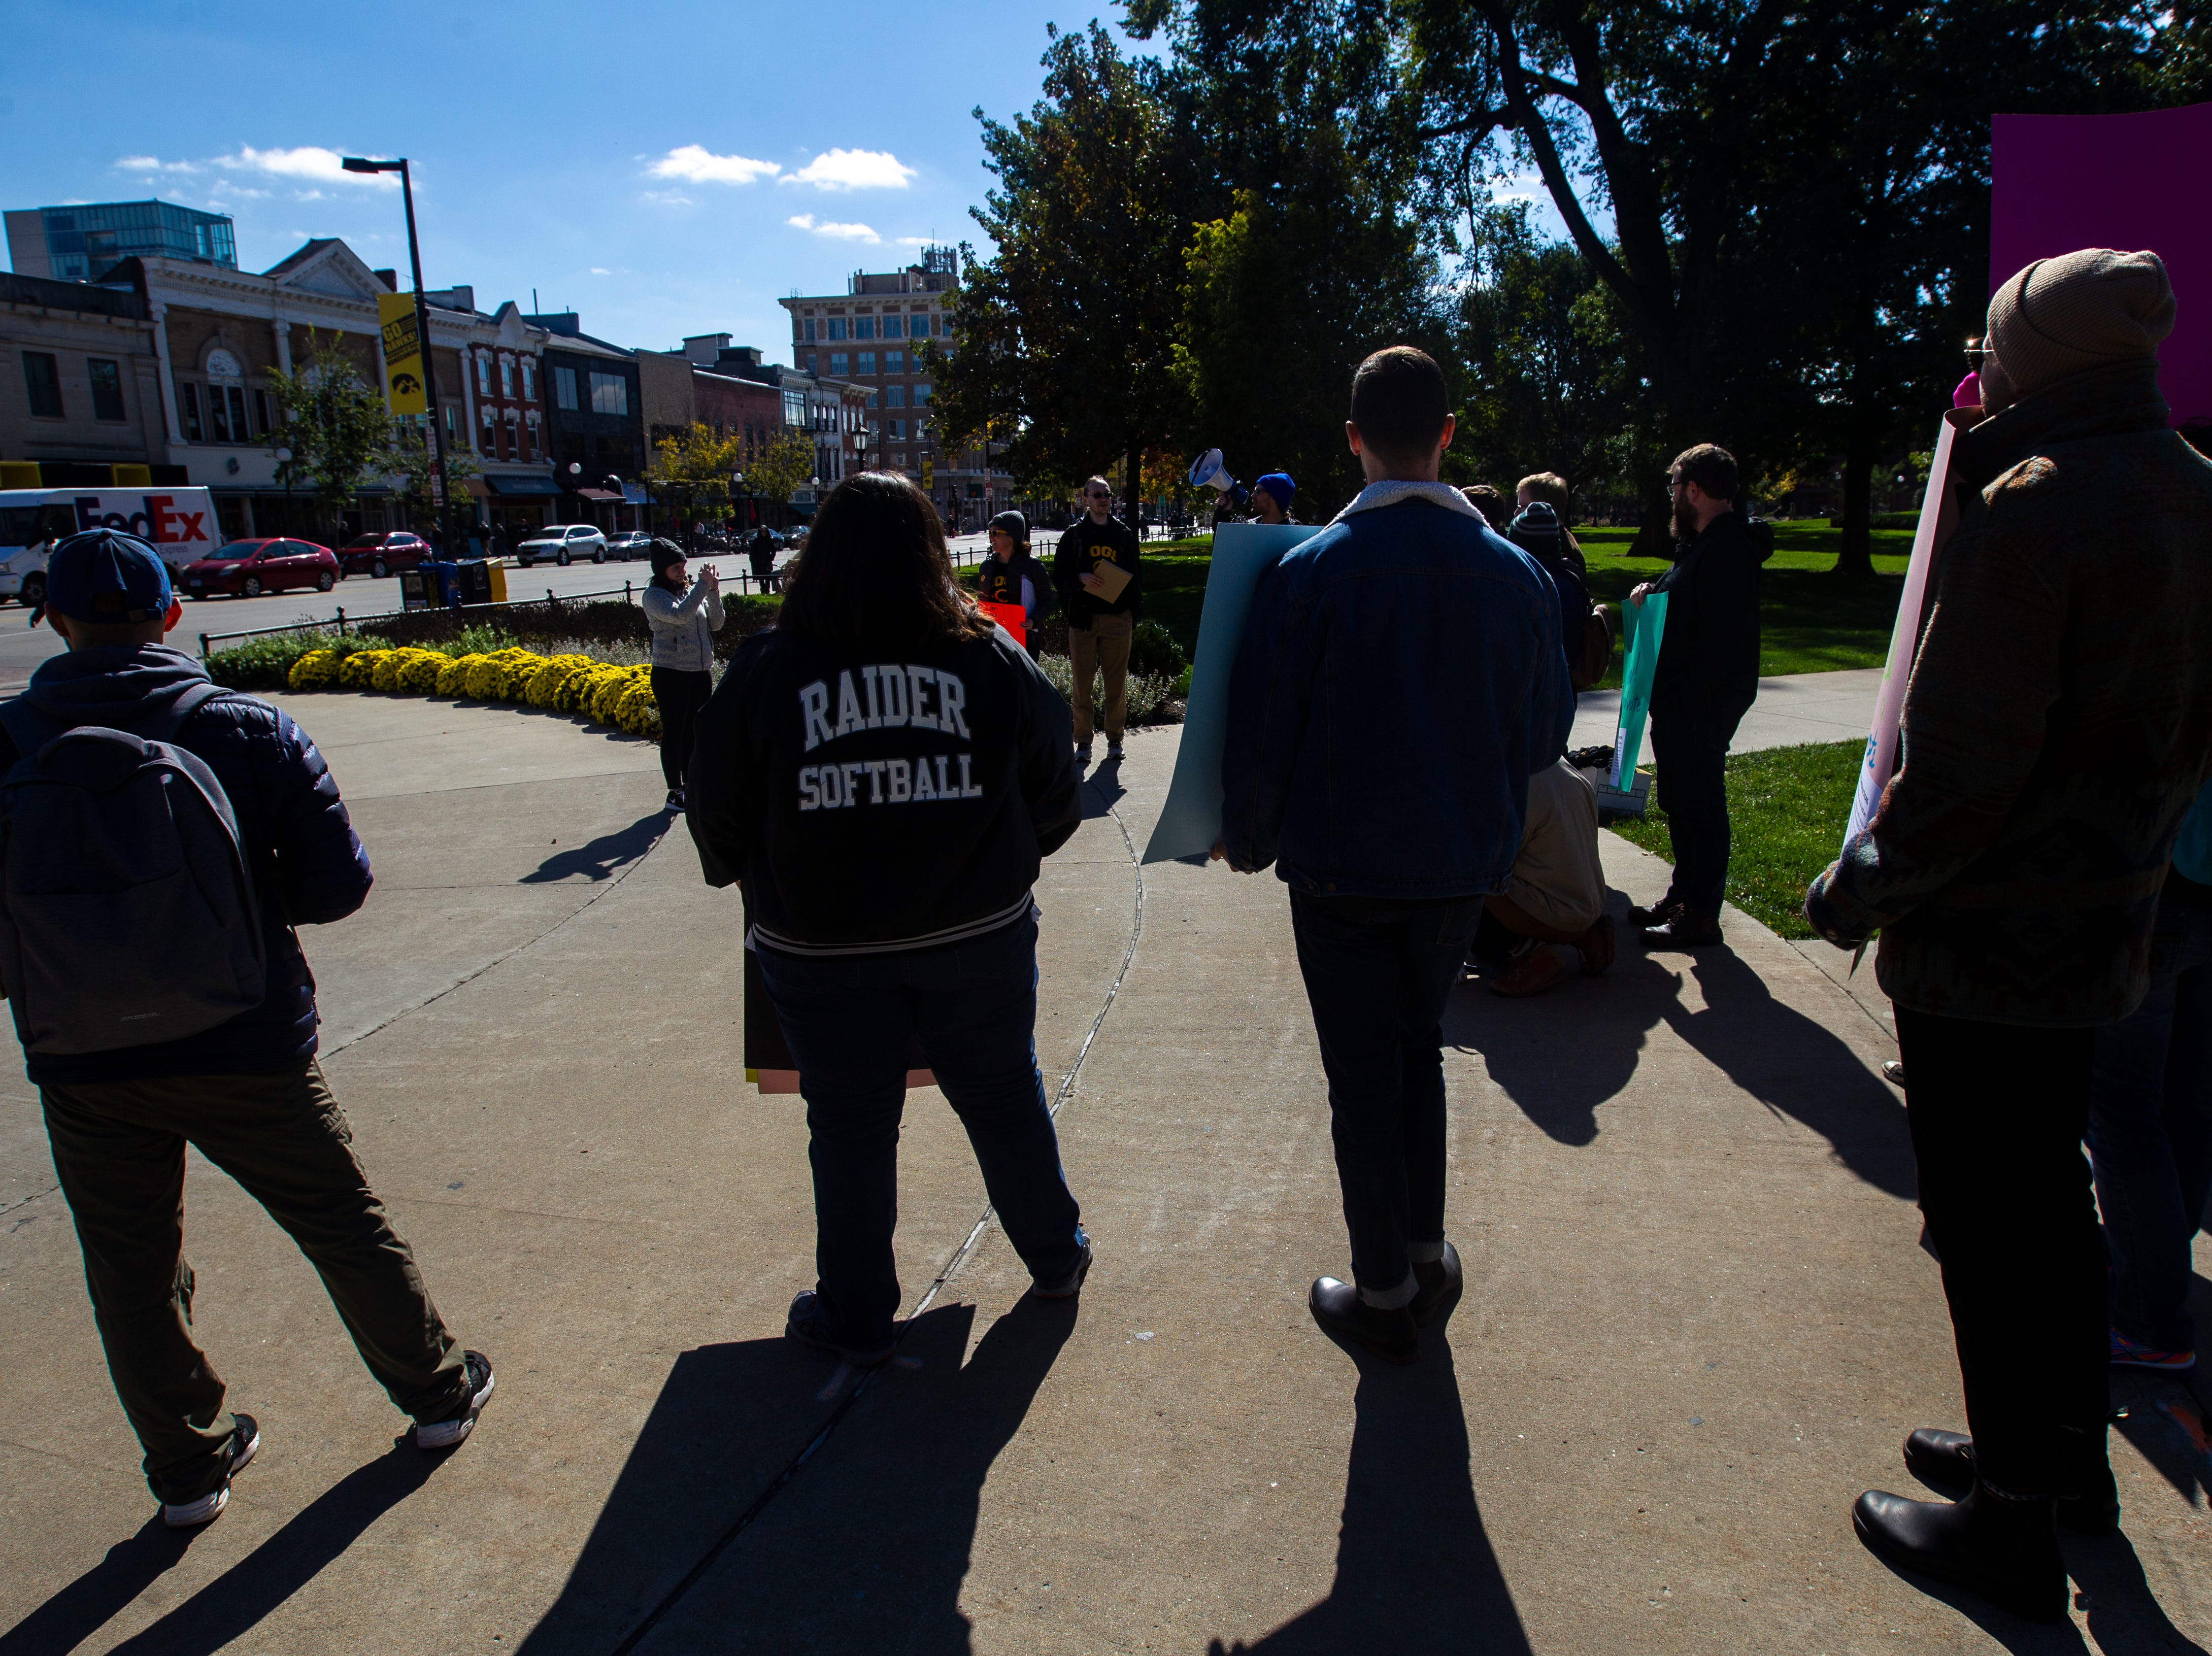 Campaign to Organize Graduate Students members gather while holding a demonstration on Monday, Oct. 15, 2018, on the Pentacrest along Clinton Street in Iowa City.